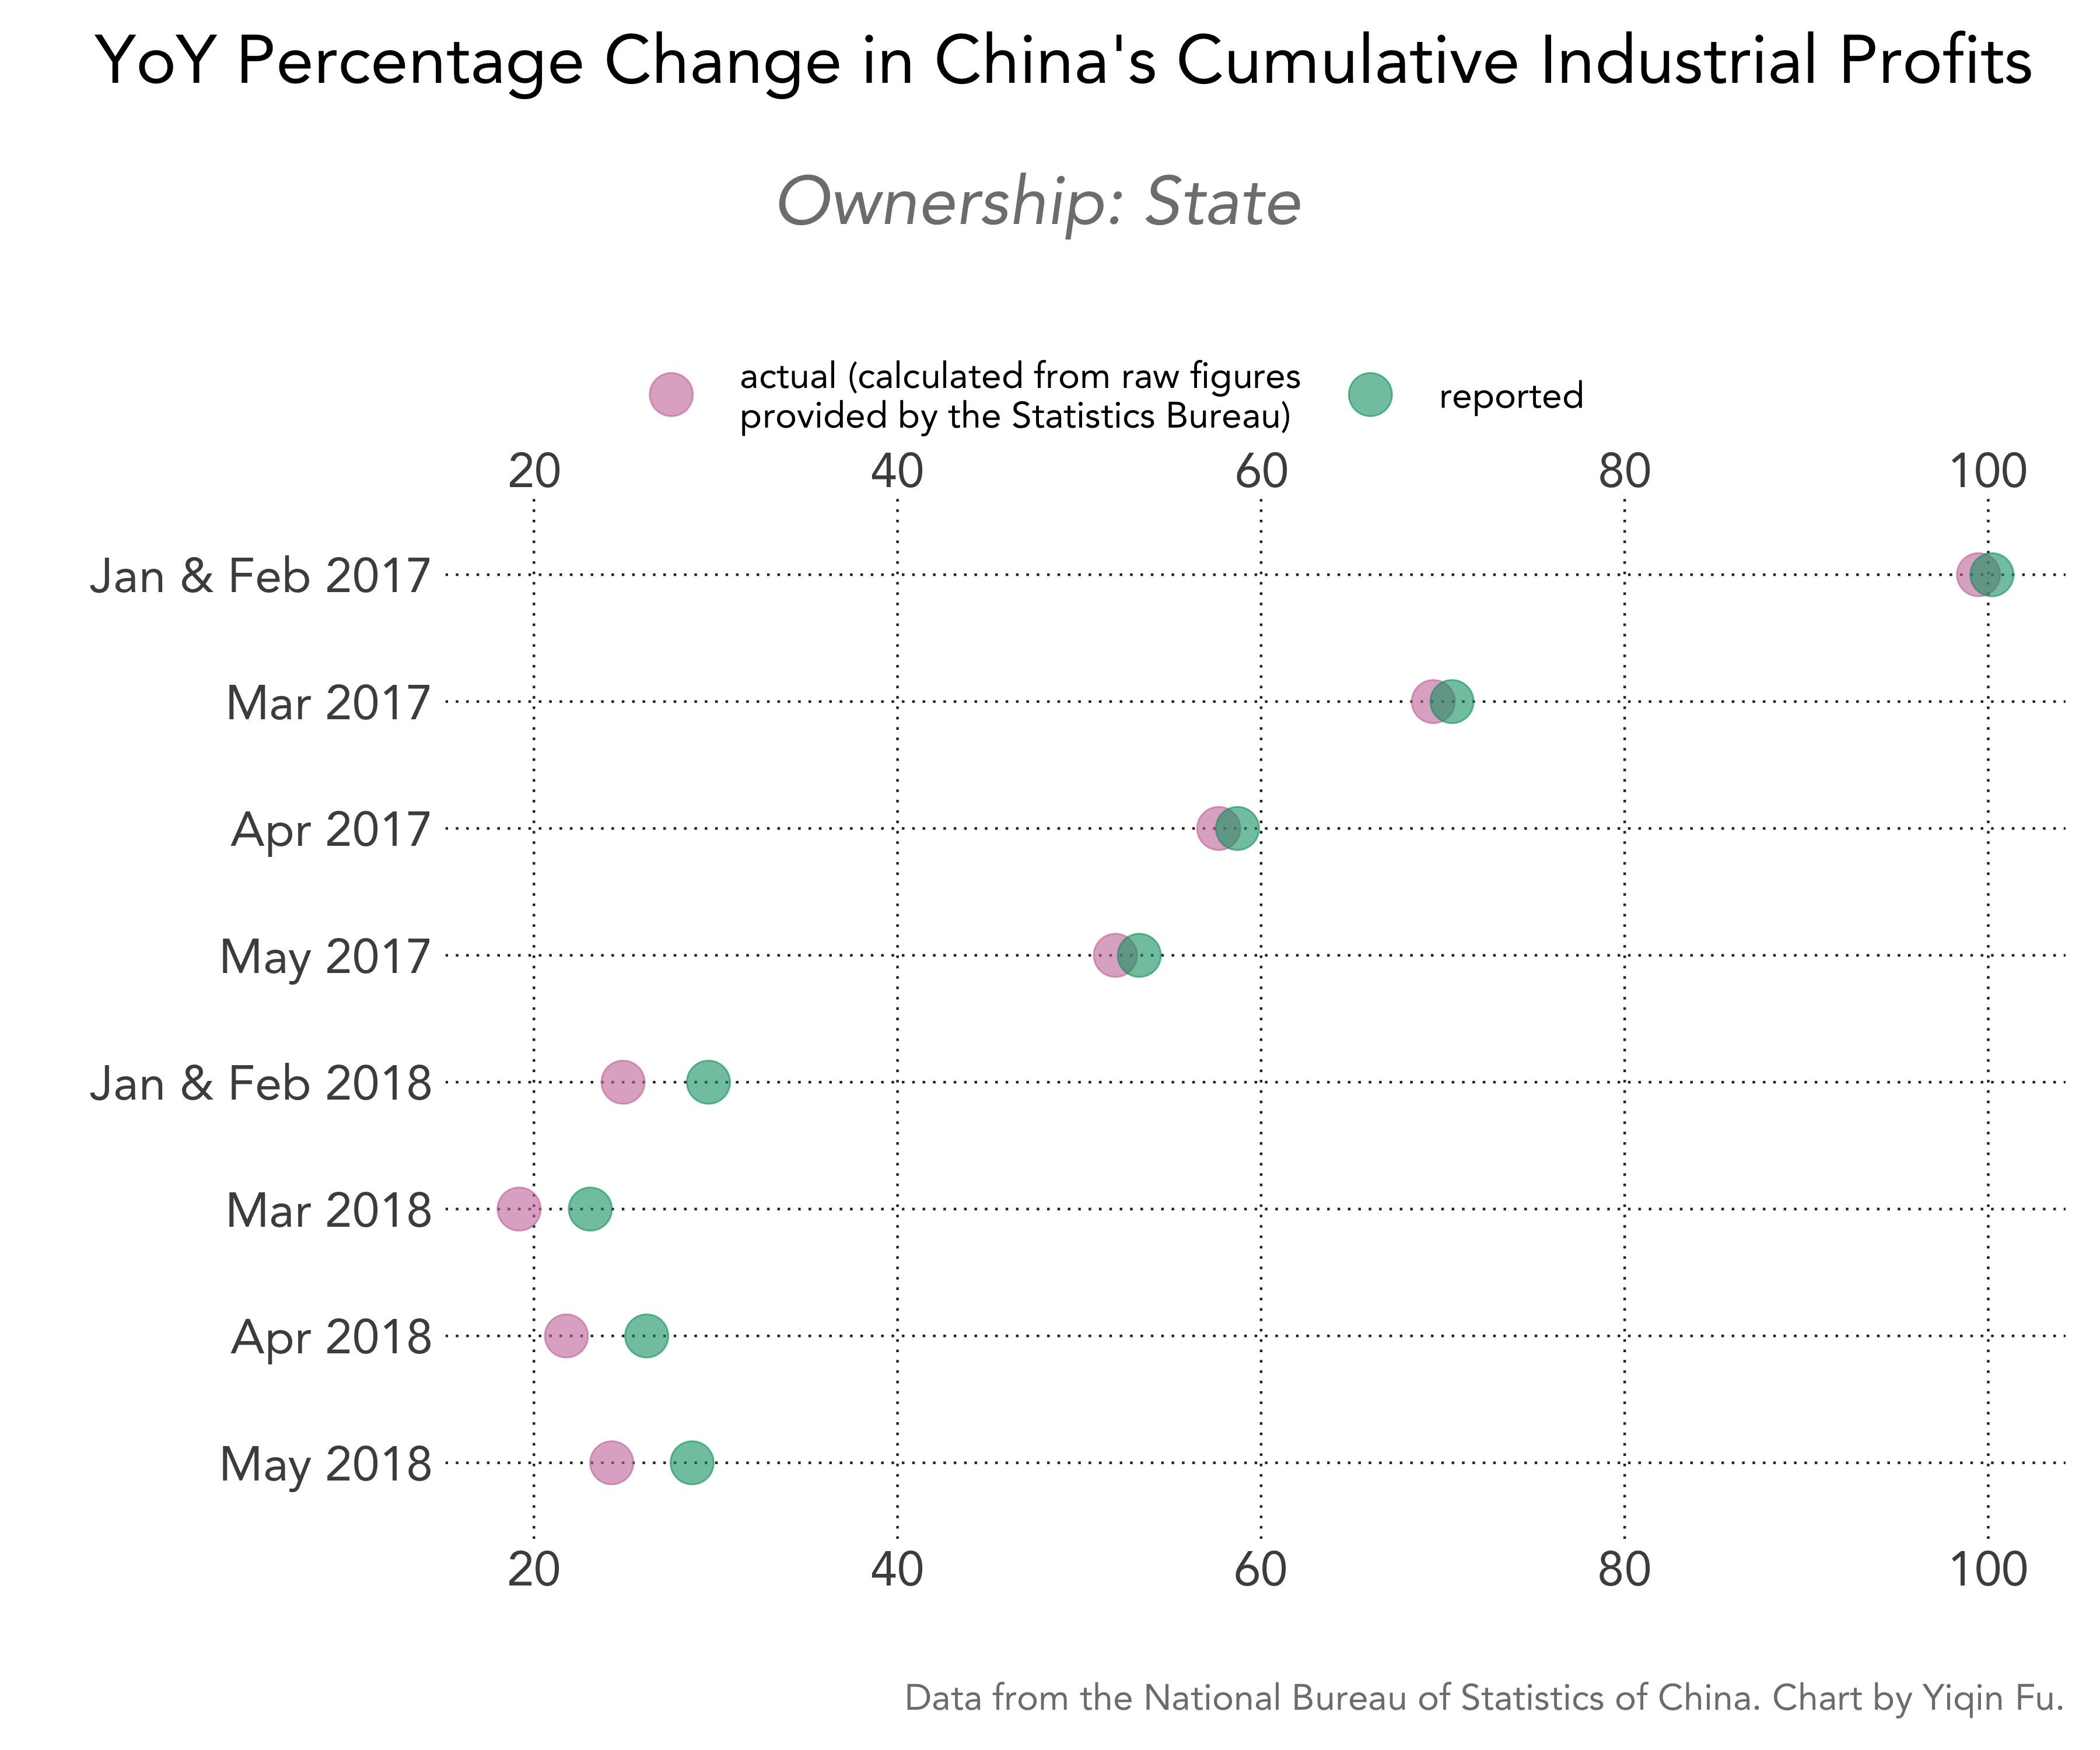 china-cumulative-industrial-profits-pct-change-actual-vs-reported-soe